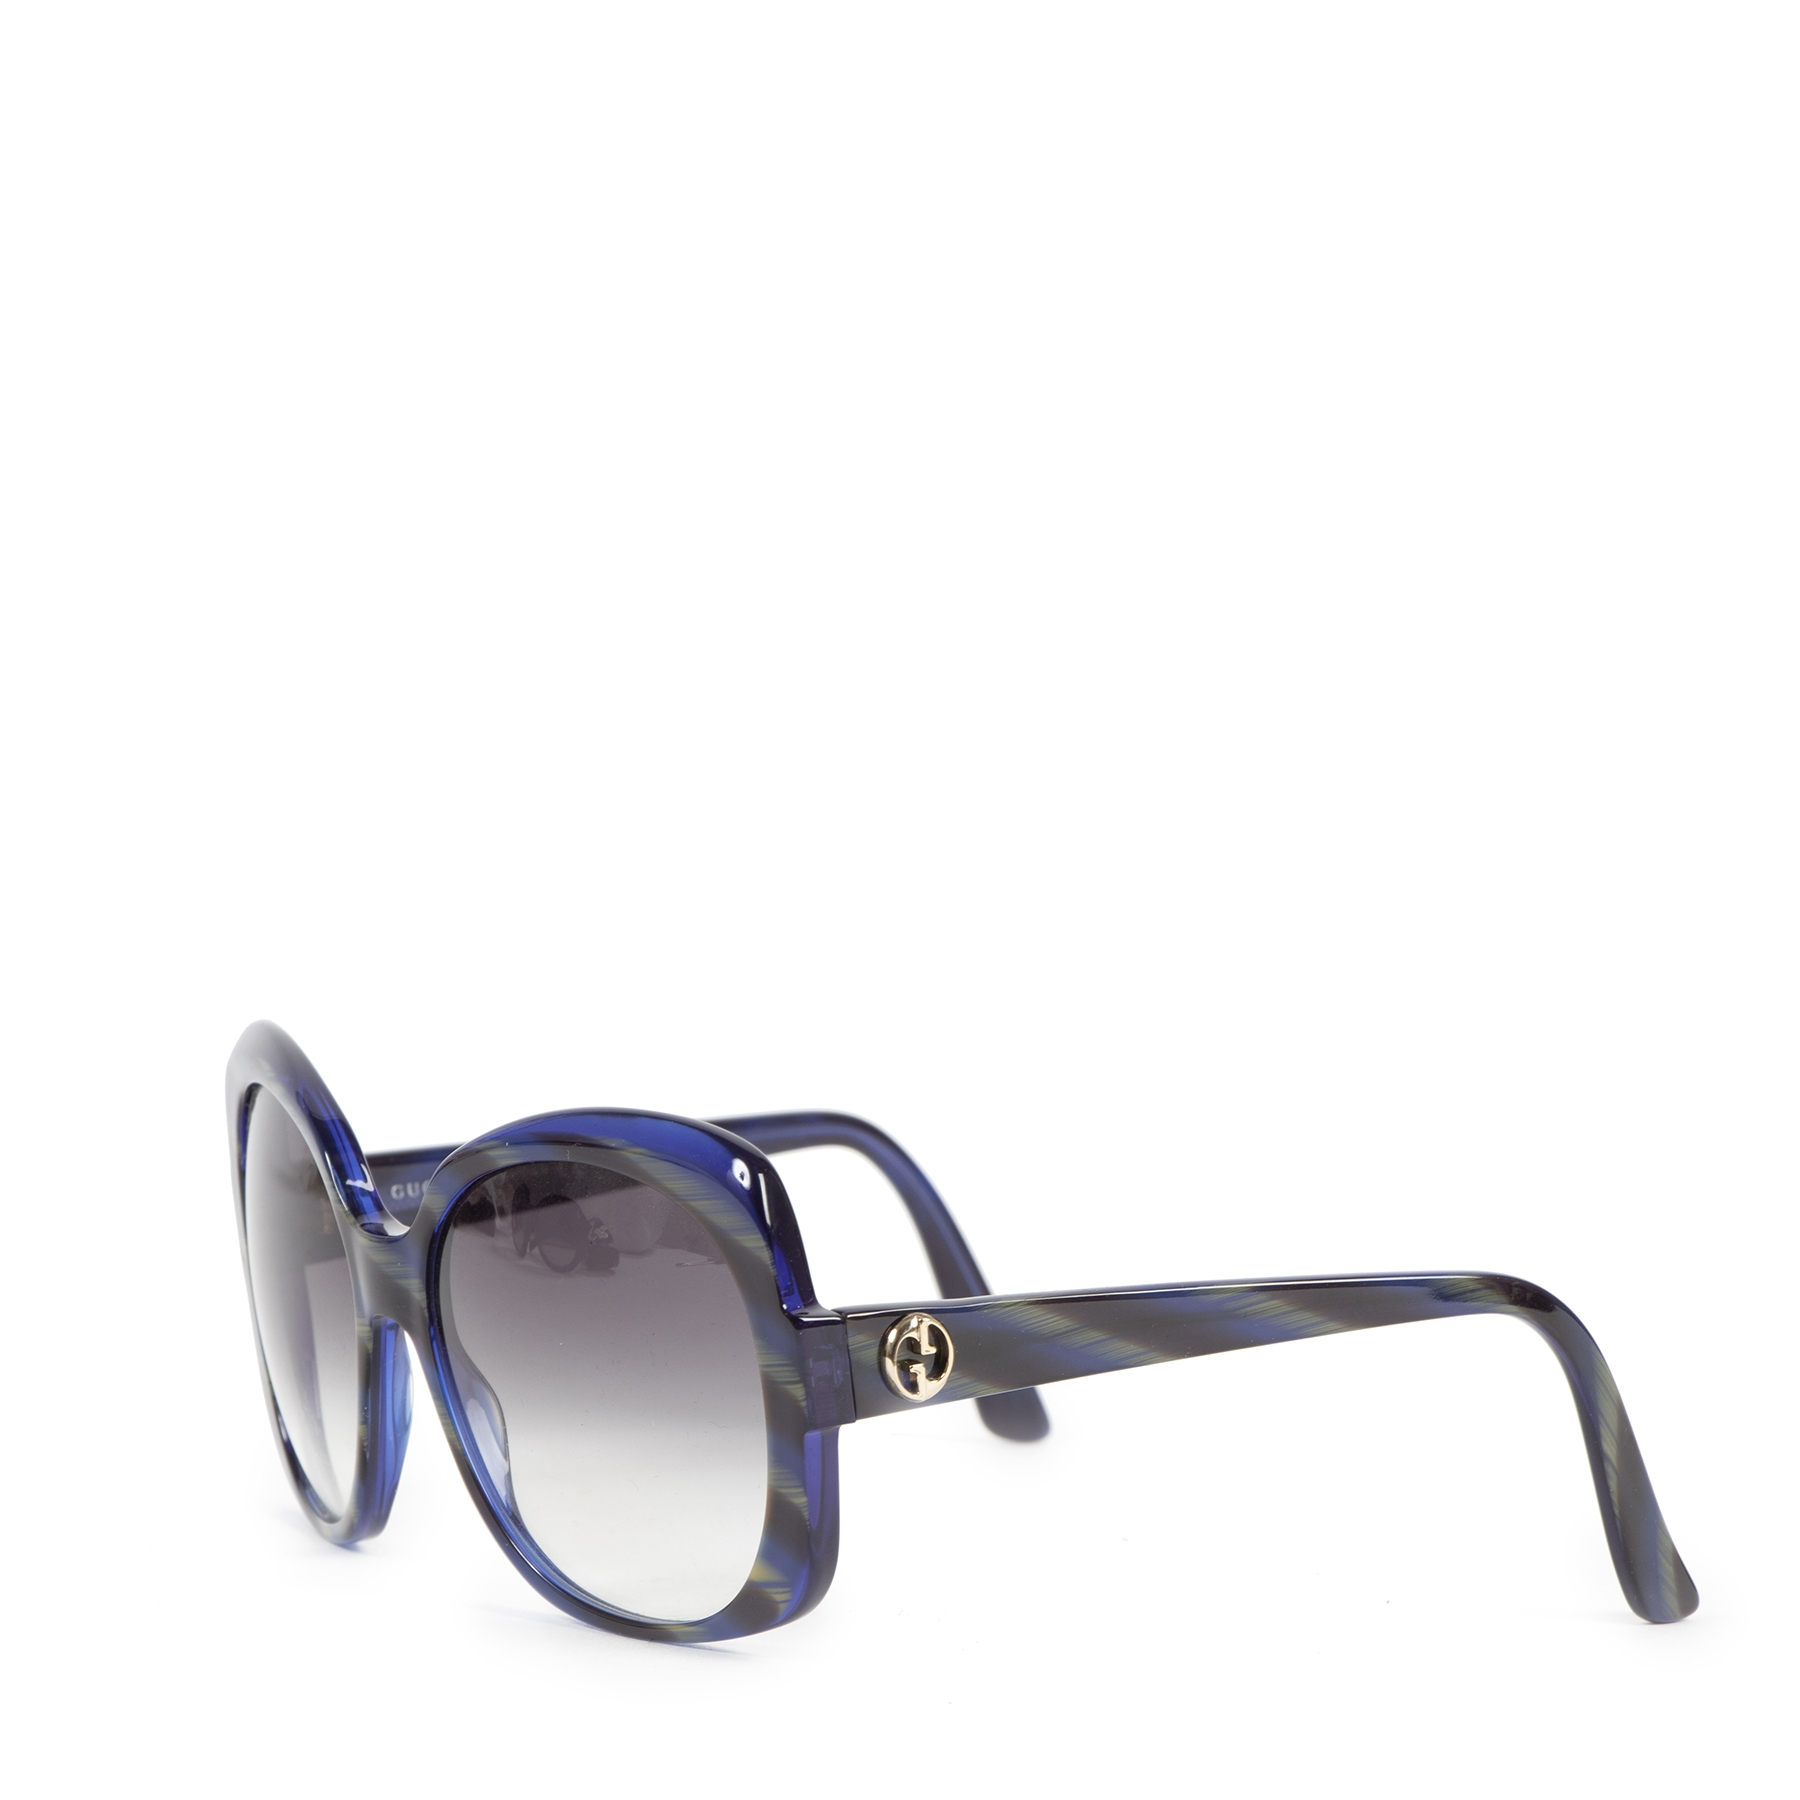 Gucci Printed Square Sunglasses